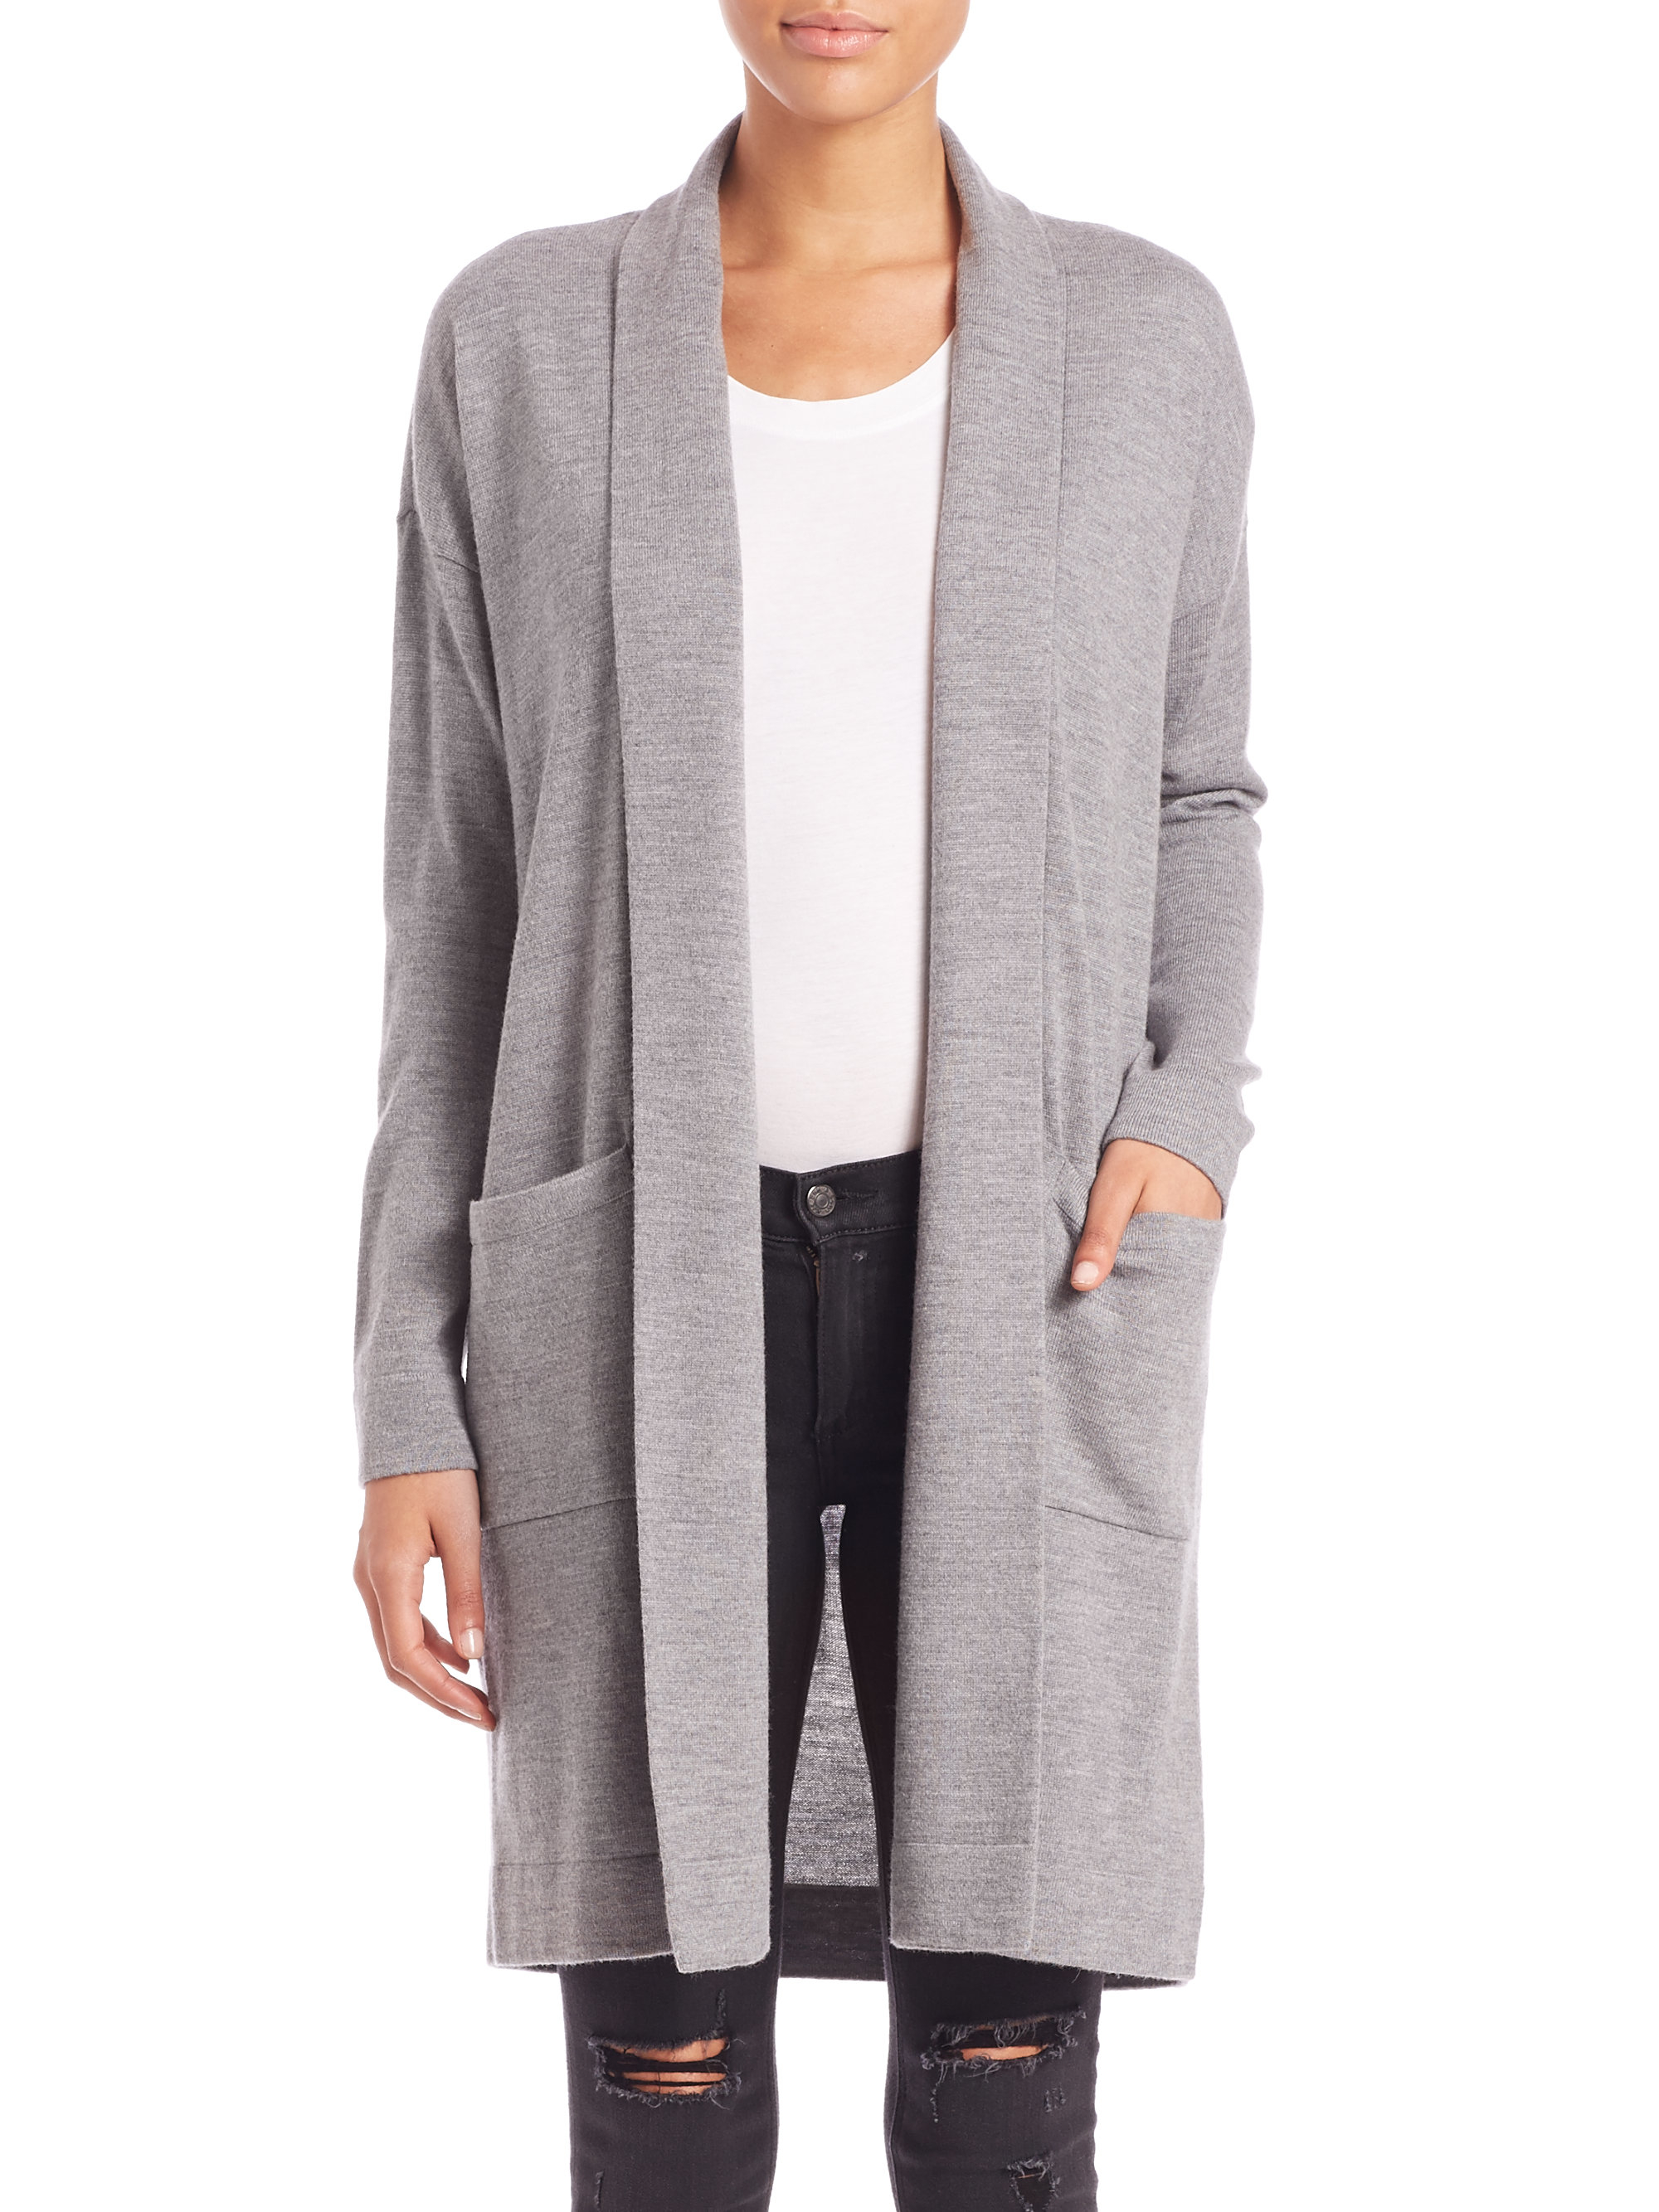 Bcbgmaxazria Long Open-front Cardigan in Gray | Lyst